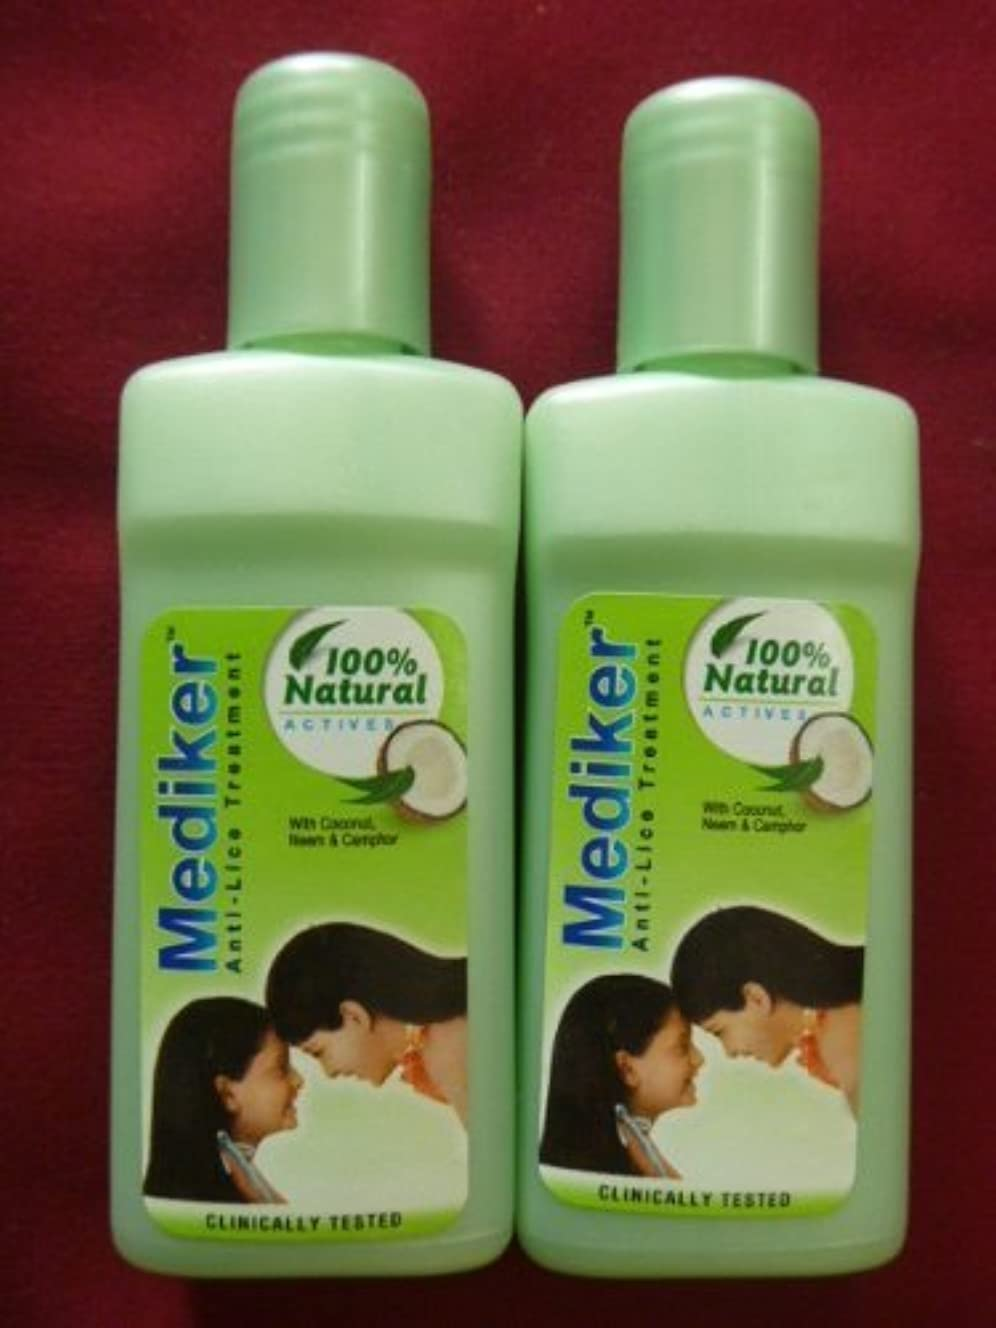 潜水艦反響する巻き戻す2 X Mediker Anti Lice Remover Treatment Head Shampoo 100% Lice Remove 50ml X 2 = 100ml by Mediker [並行輸入品]